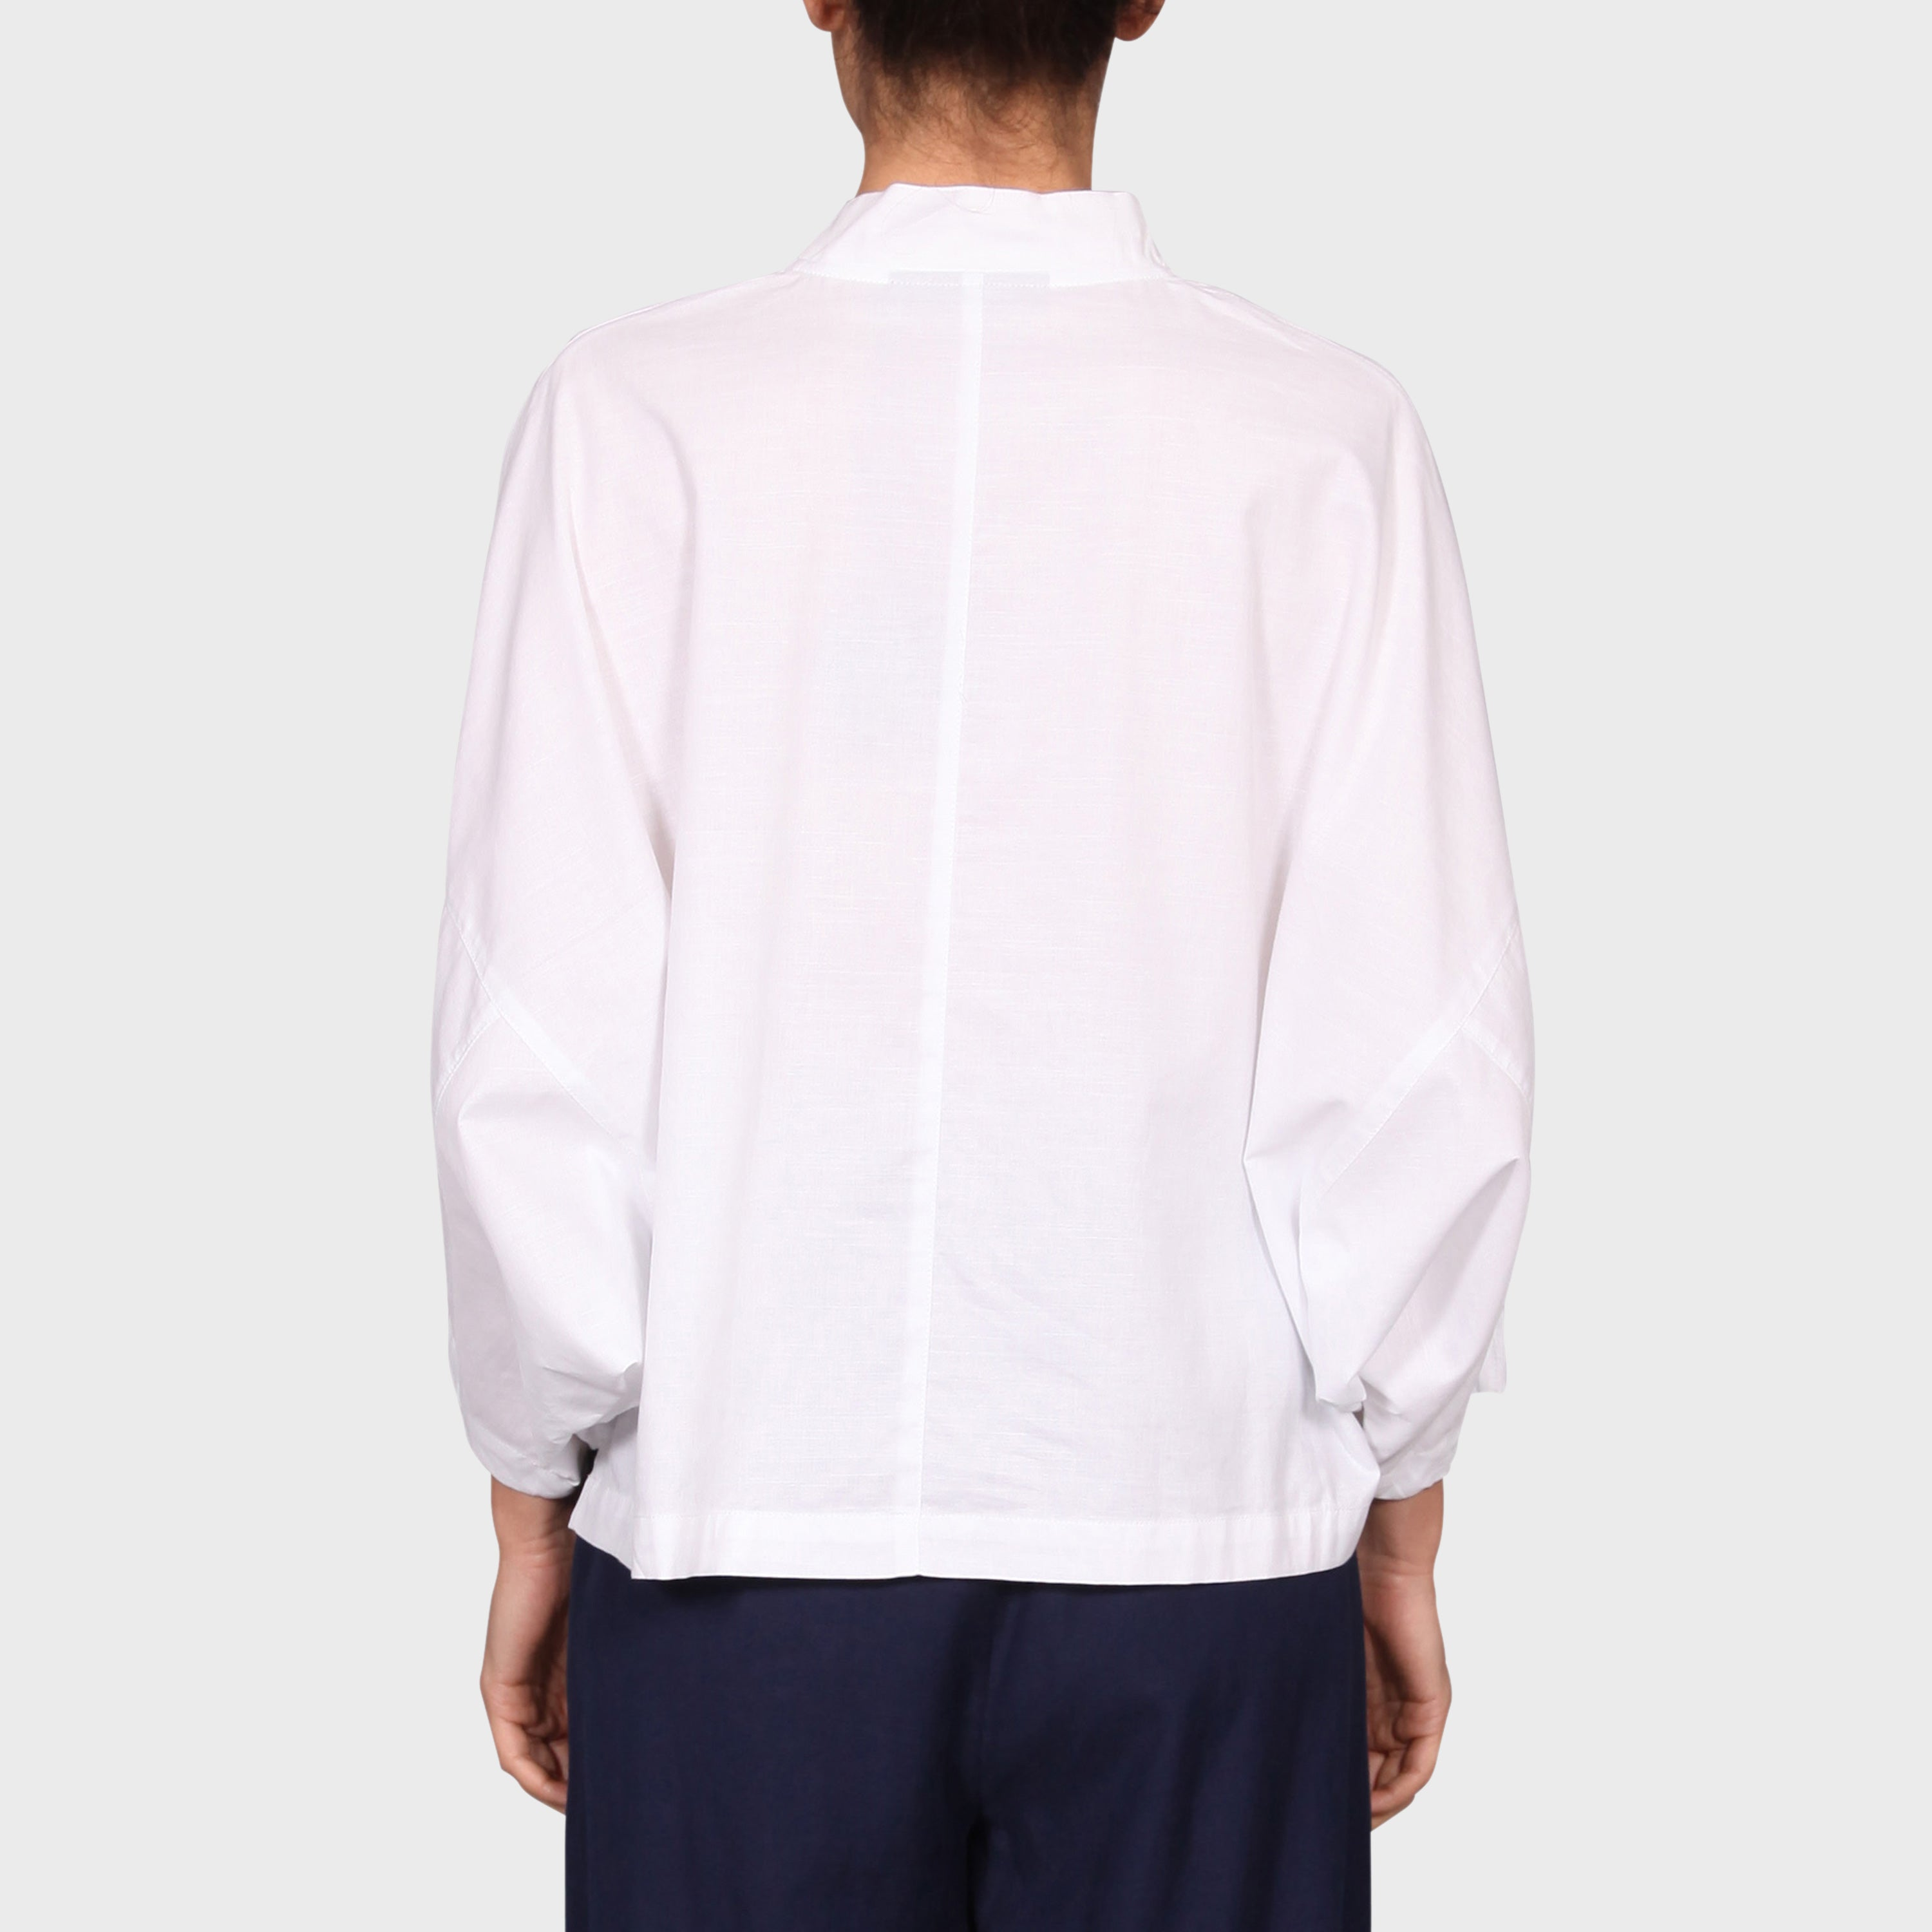 LEE SHIRT / WHITE